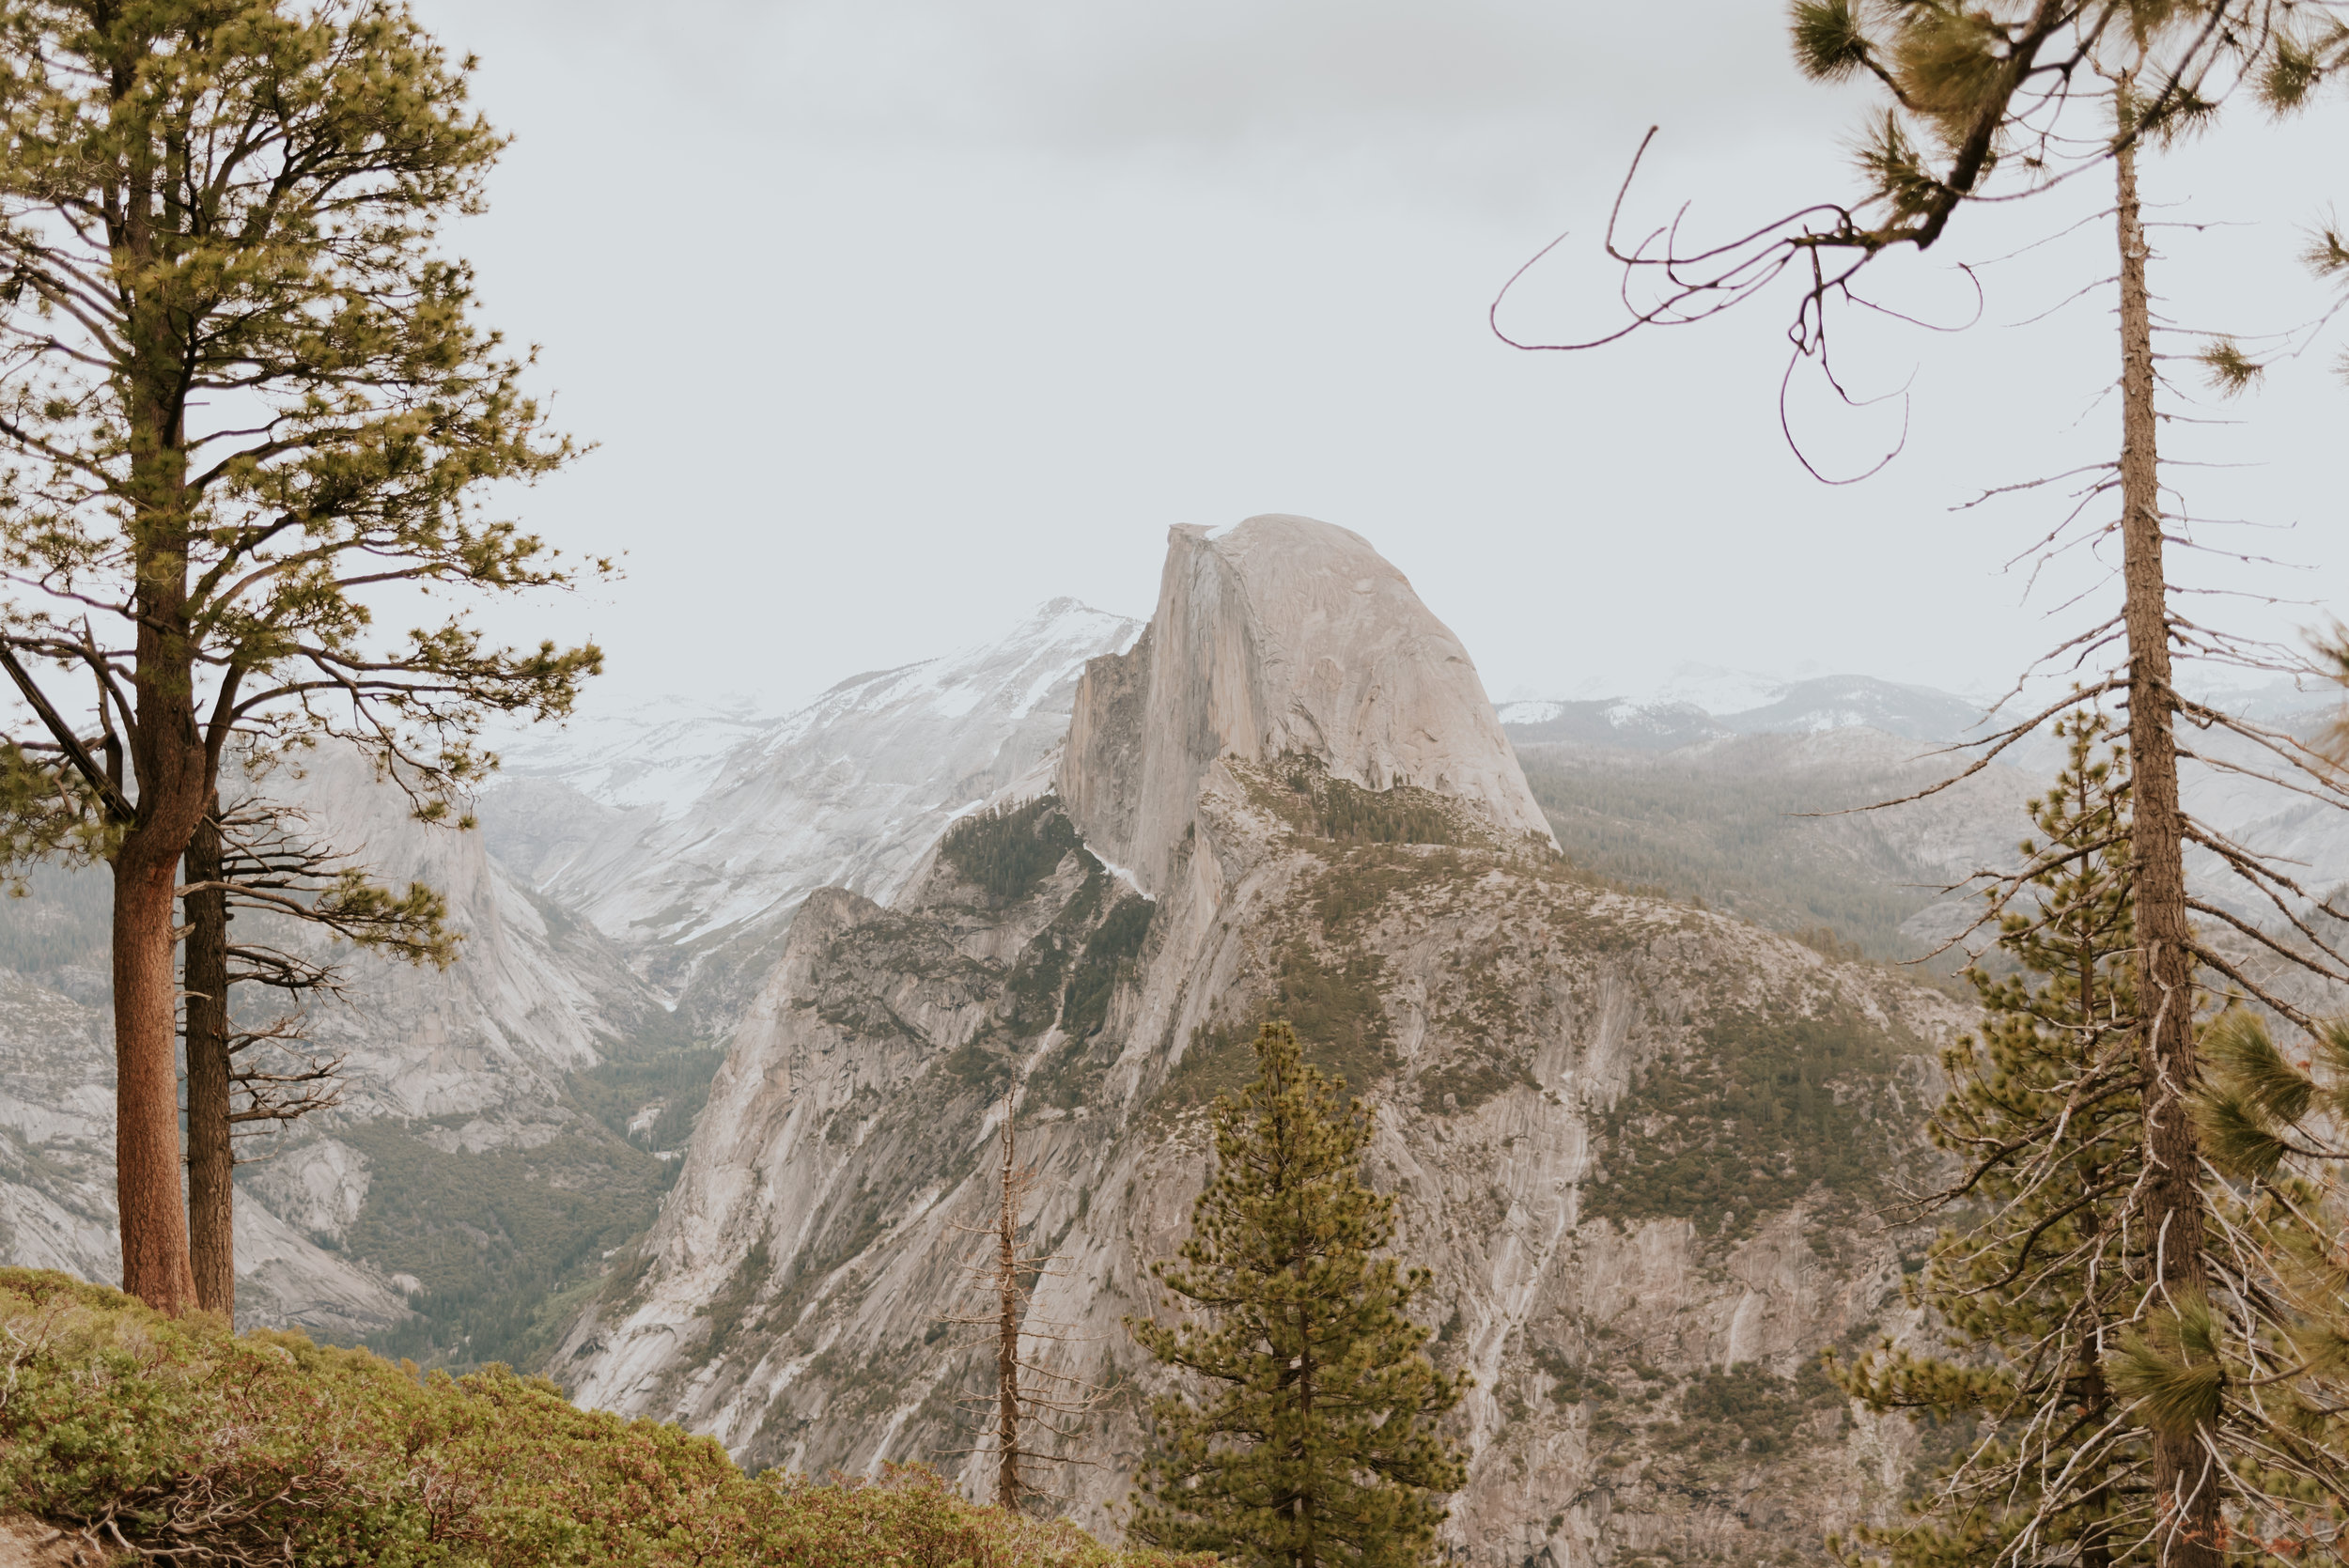 glacier-point-yosemite-elopement-carrie-rogers-photography-14.jpg